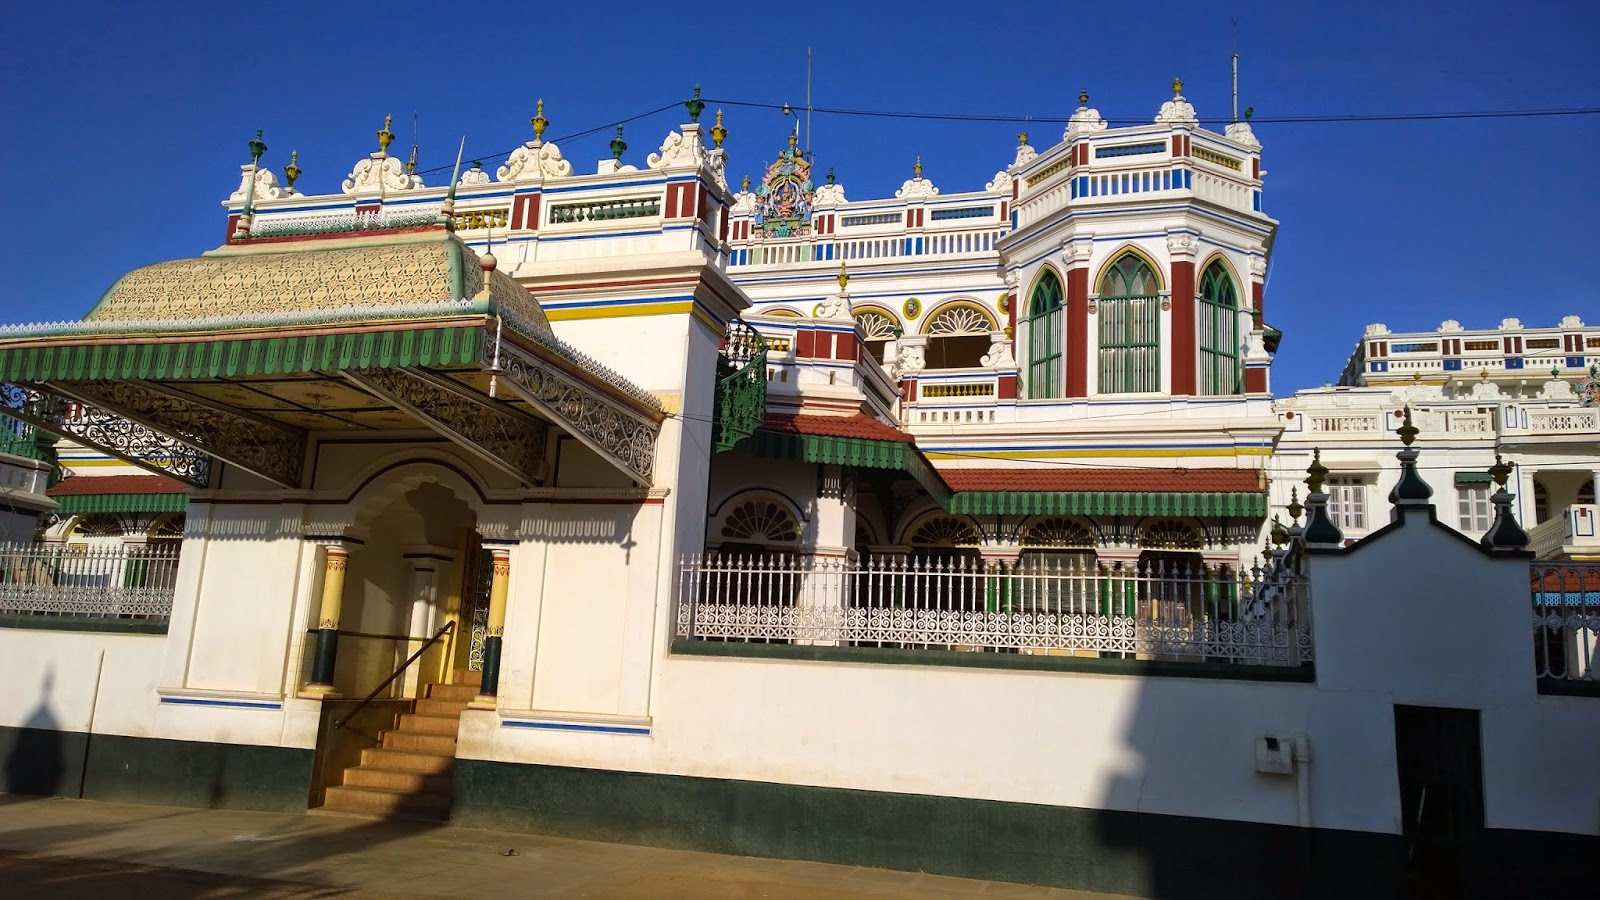 A Day and a Night in - Chettinad | Explore the world through a path ...